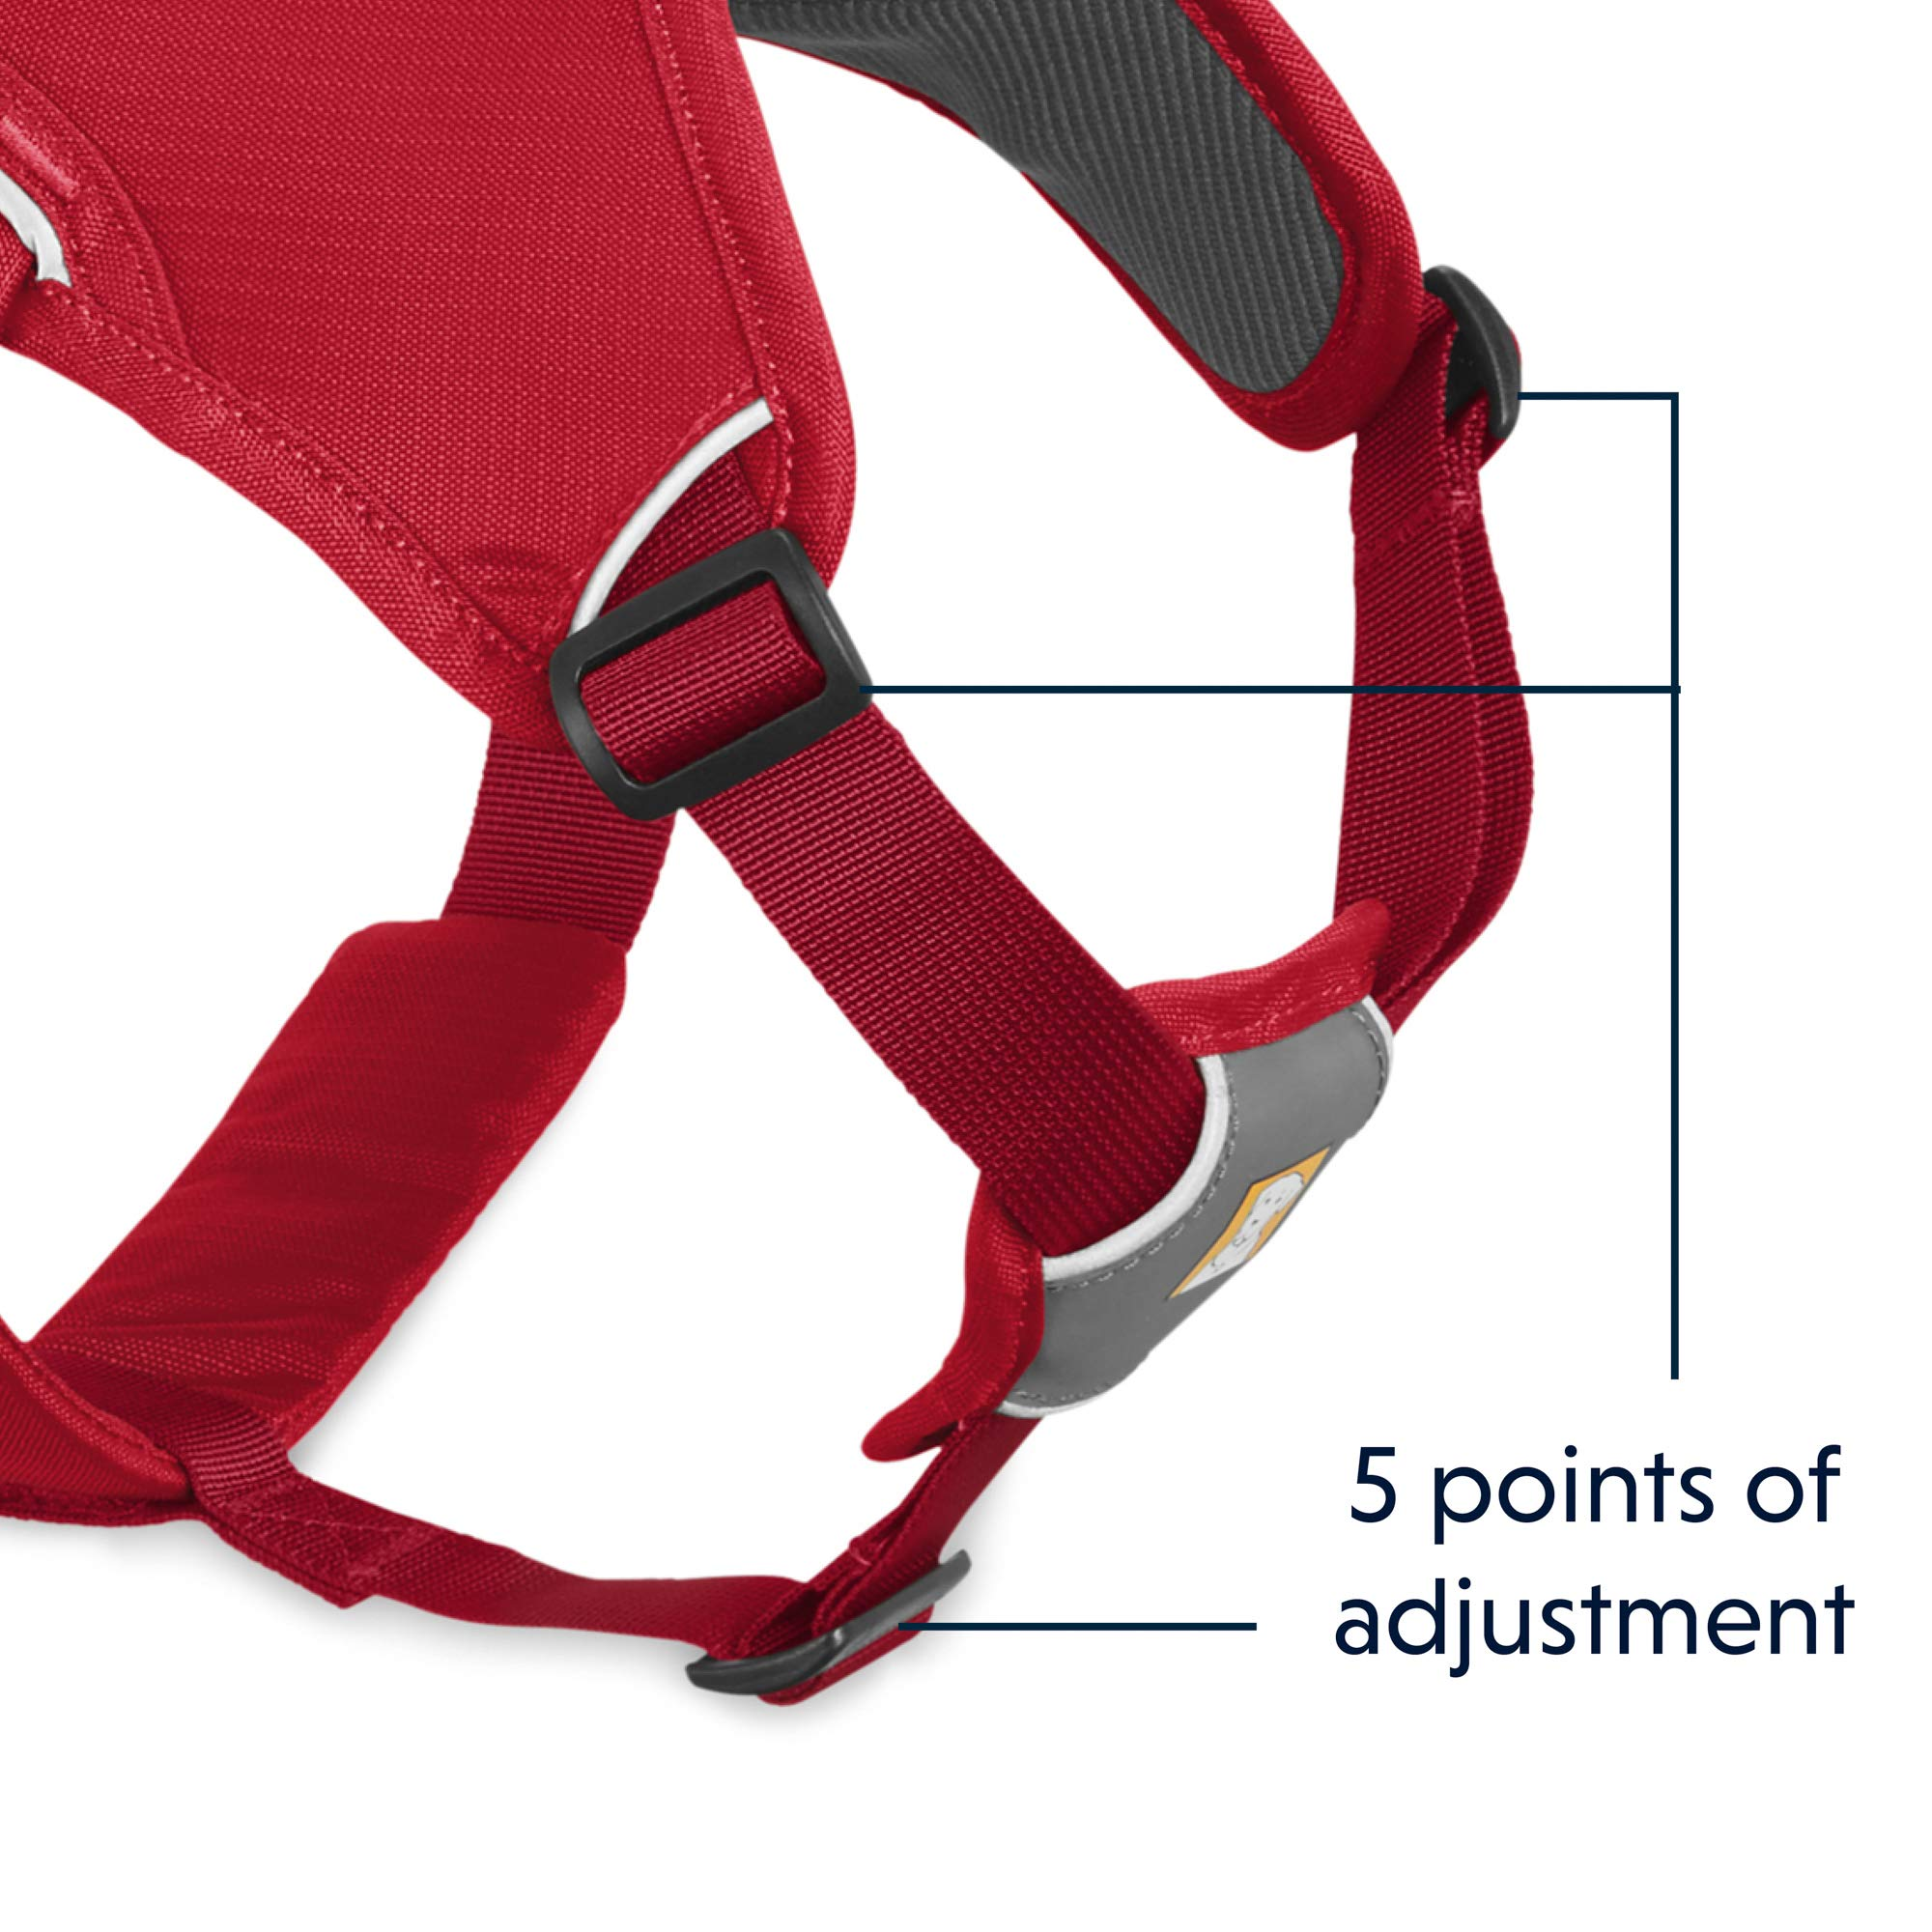 RUFFWEAR - Web Master, Multi-Use Support Dog Harness, Hiking and Trail Running, Service and Working, Everyday Wear, Red Currant, X-Small by RUFFWEAR (Image #5)